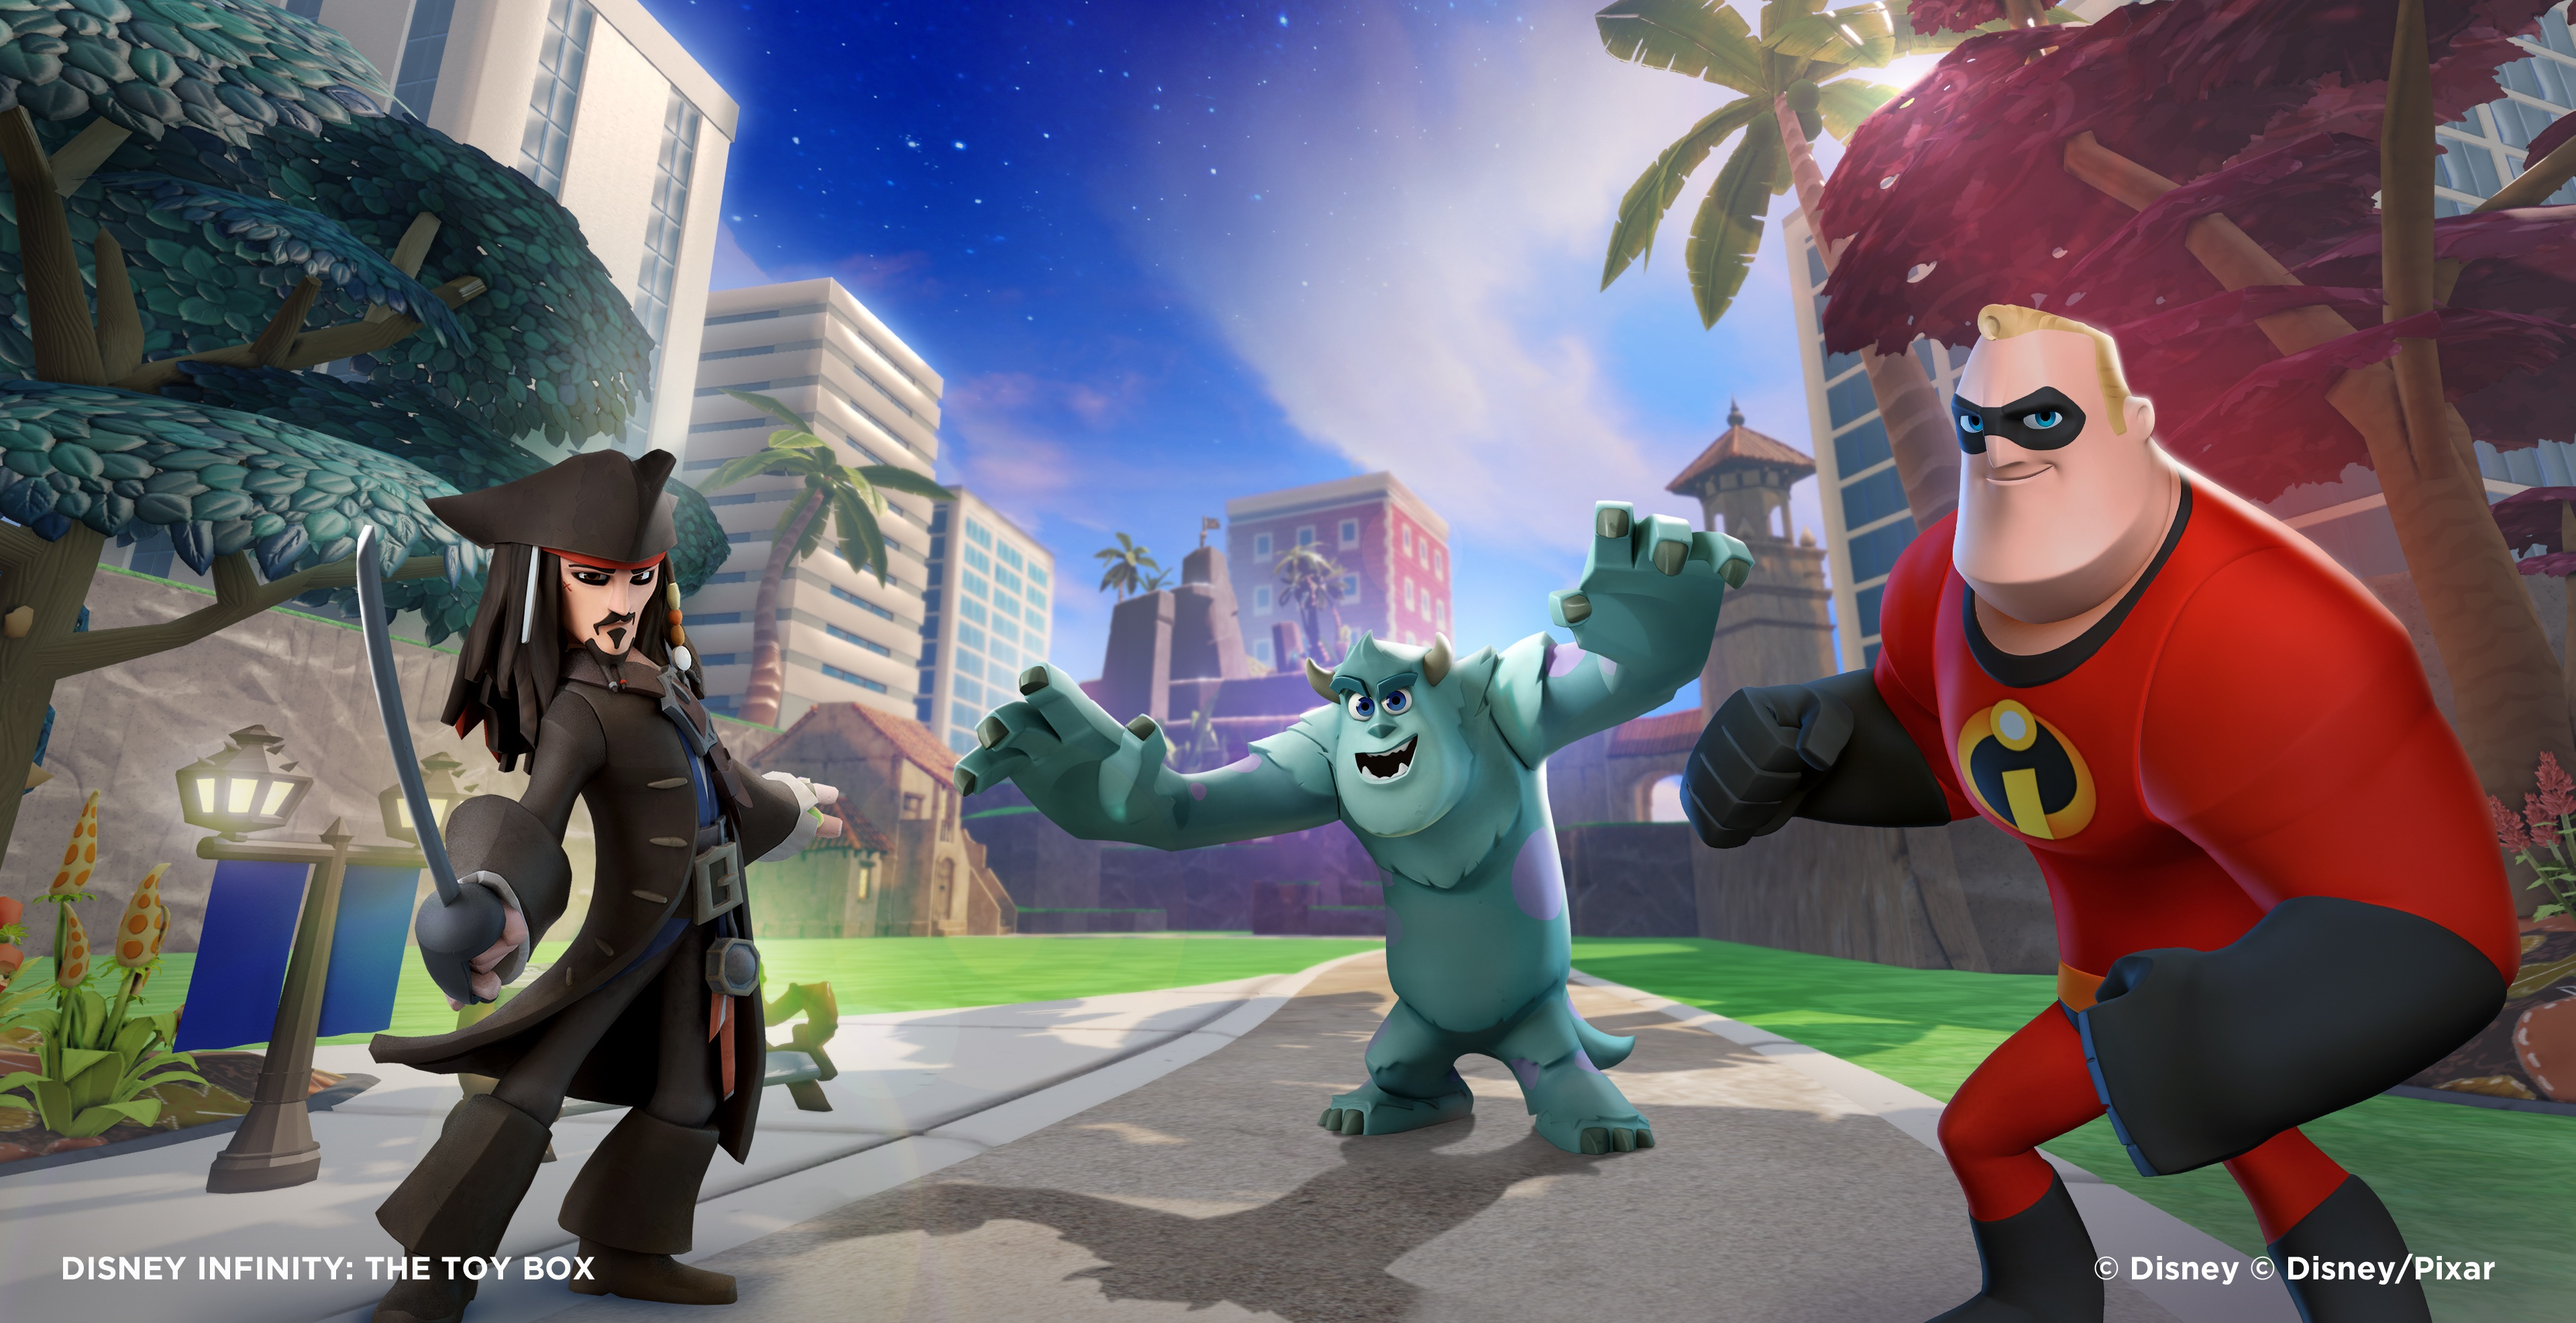 Watch: 'What Is Disney Infinity?' Episode 1 Provides An Overview Of The Play Sets